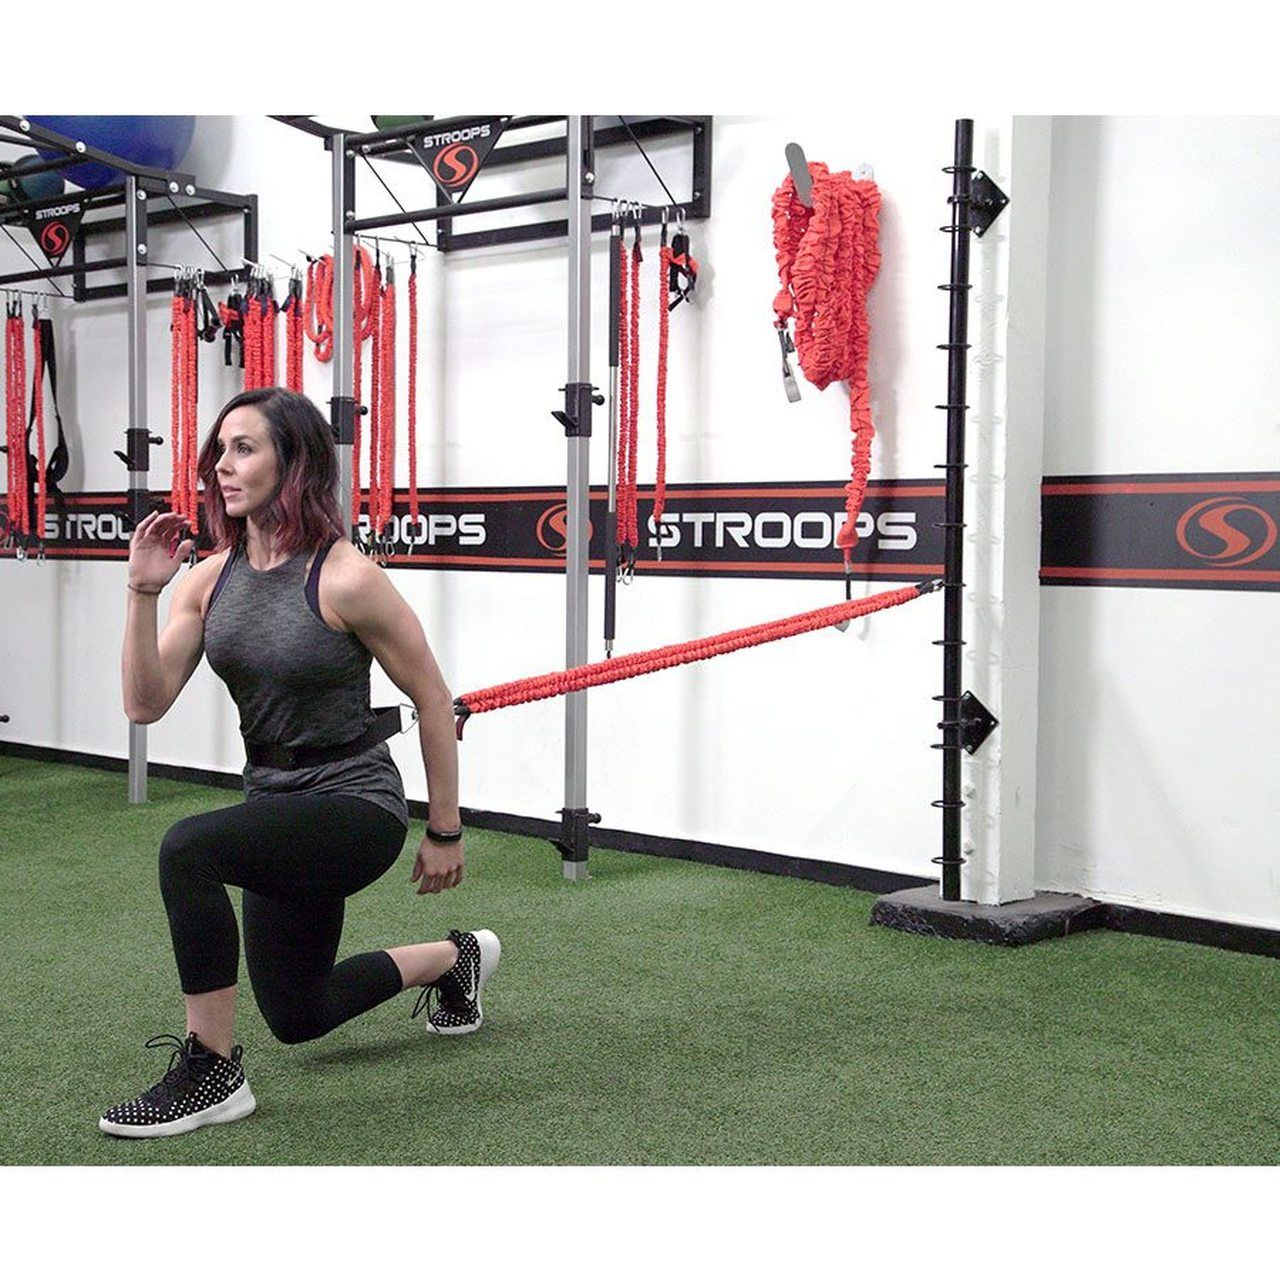 Stroops The Spine 78 Wall Mounted Anchoring System In 2020 Diy Home Gym Gym Room At Home Anchor Systems